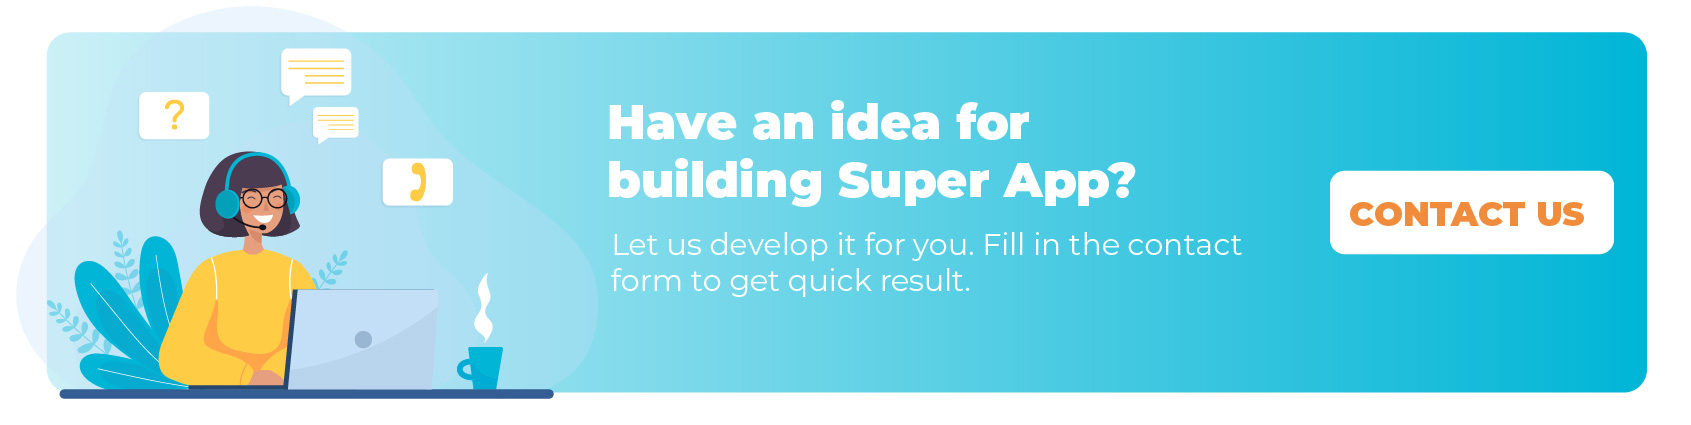 how to build a super app, contact us, agiletech